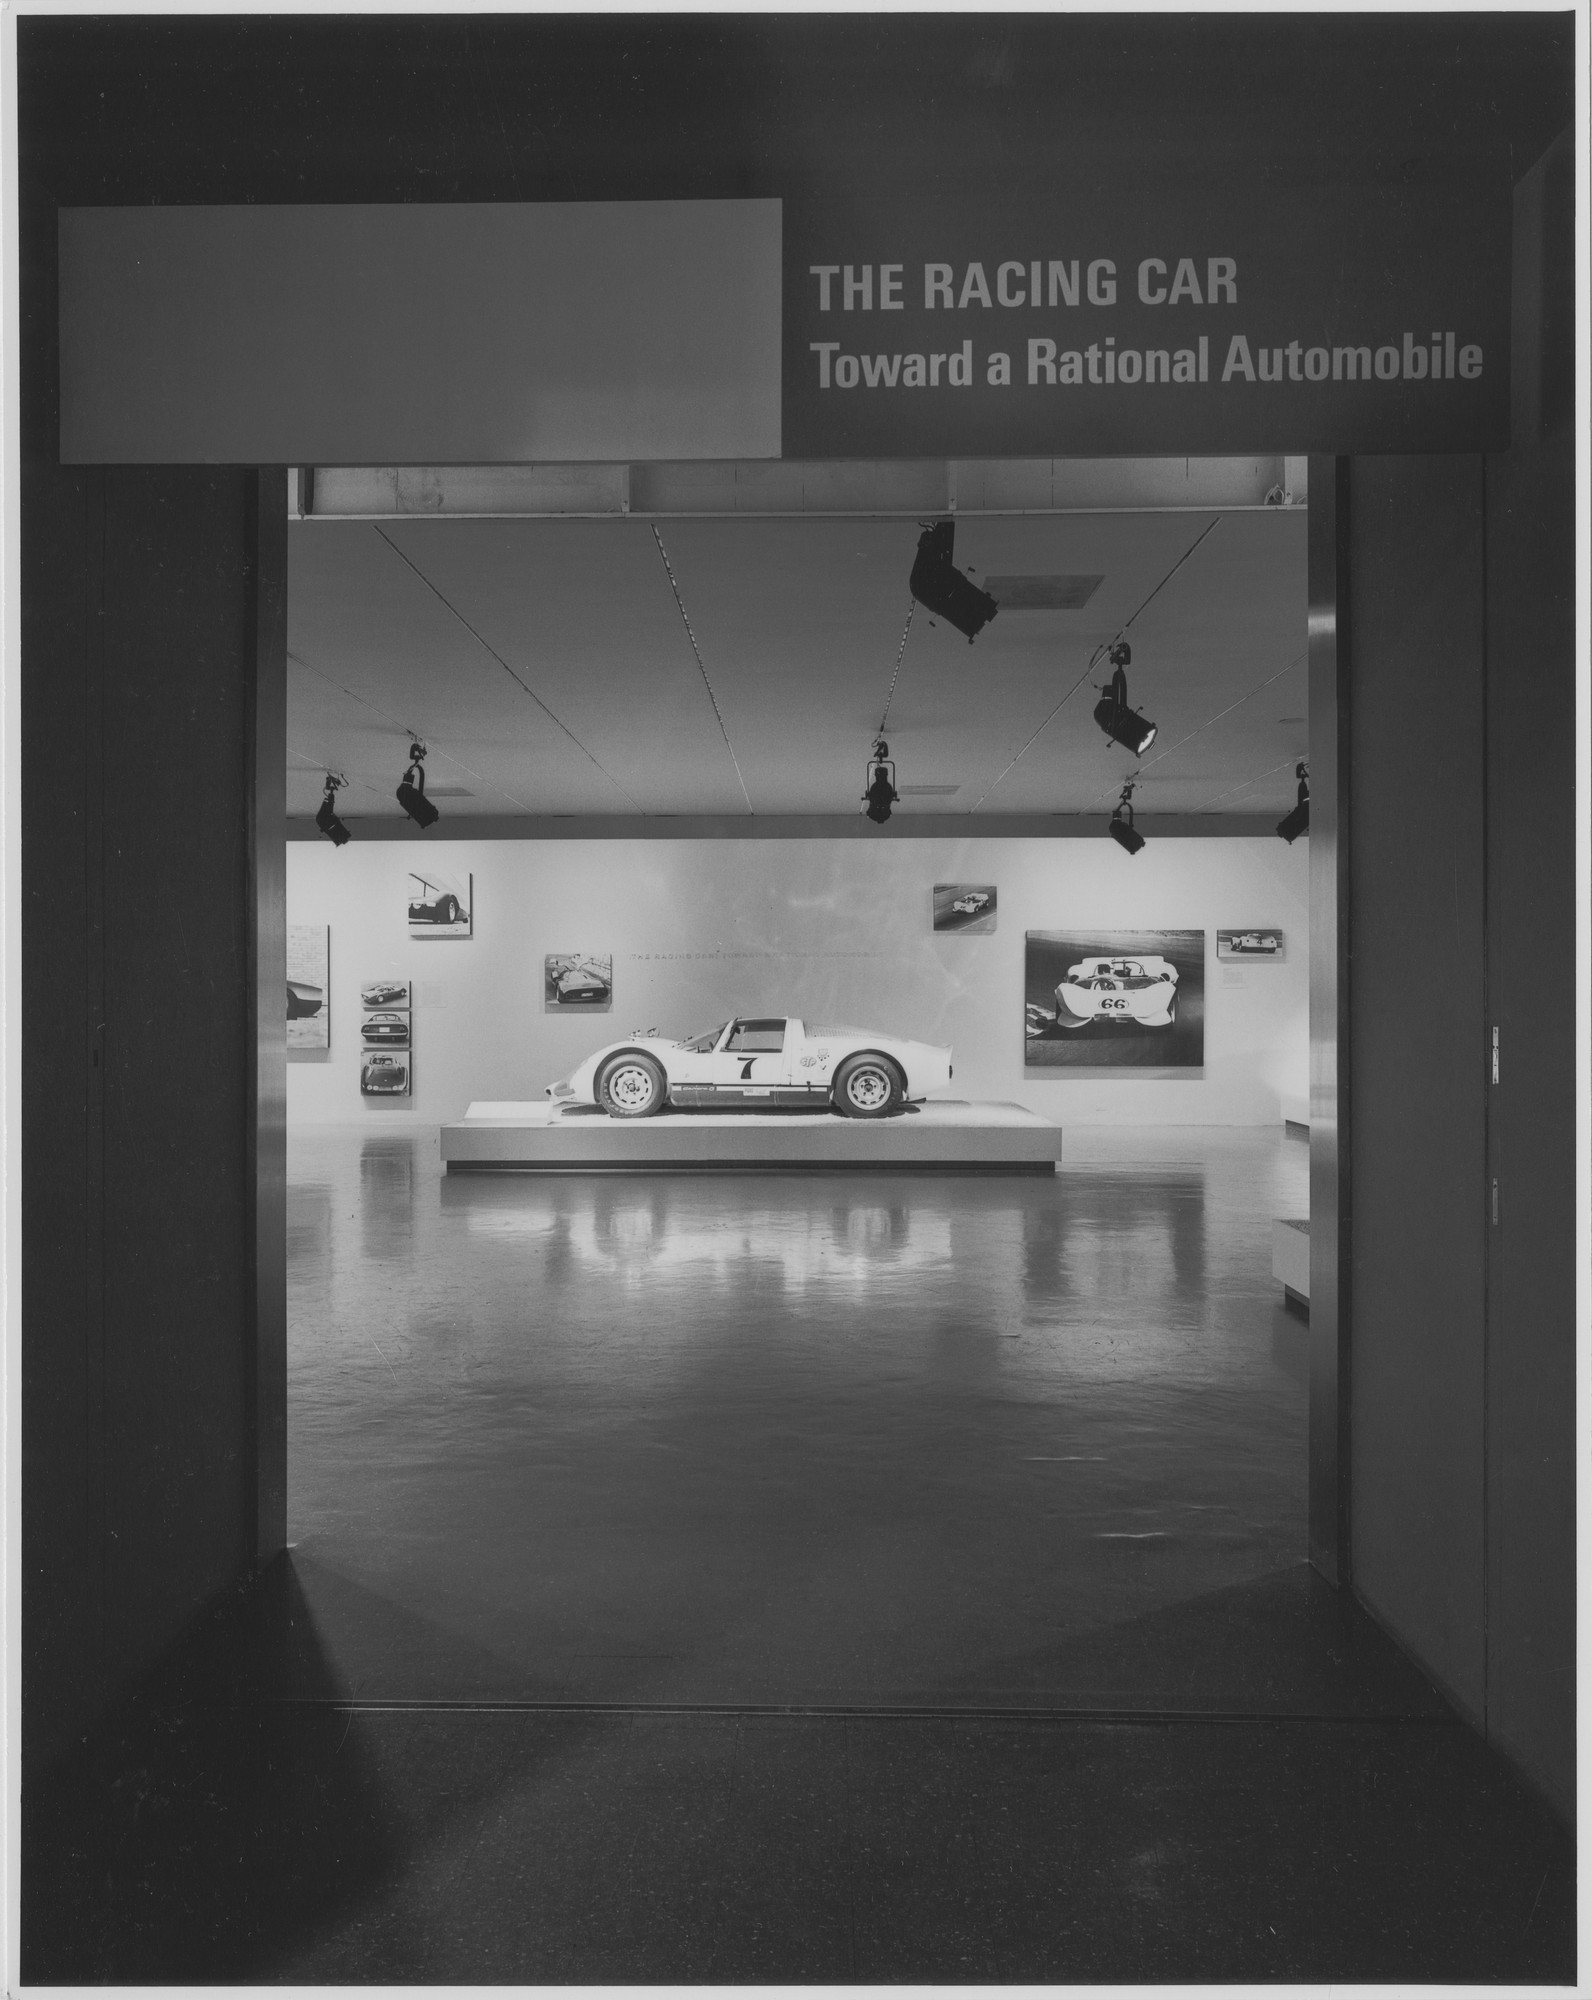 "Installation view of the exhibition, ""Toward a Rational Automobile."" September 27, 1966–November 27, 1966. Photographic Archive. The Museum of Modern Art Archives, New York. IN806.1. Photograph by George Cserna."